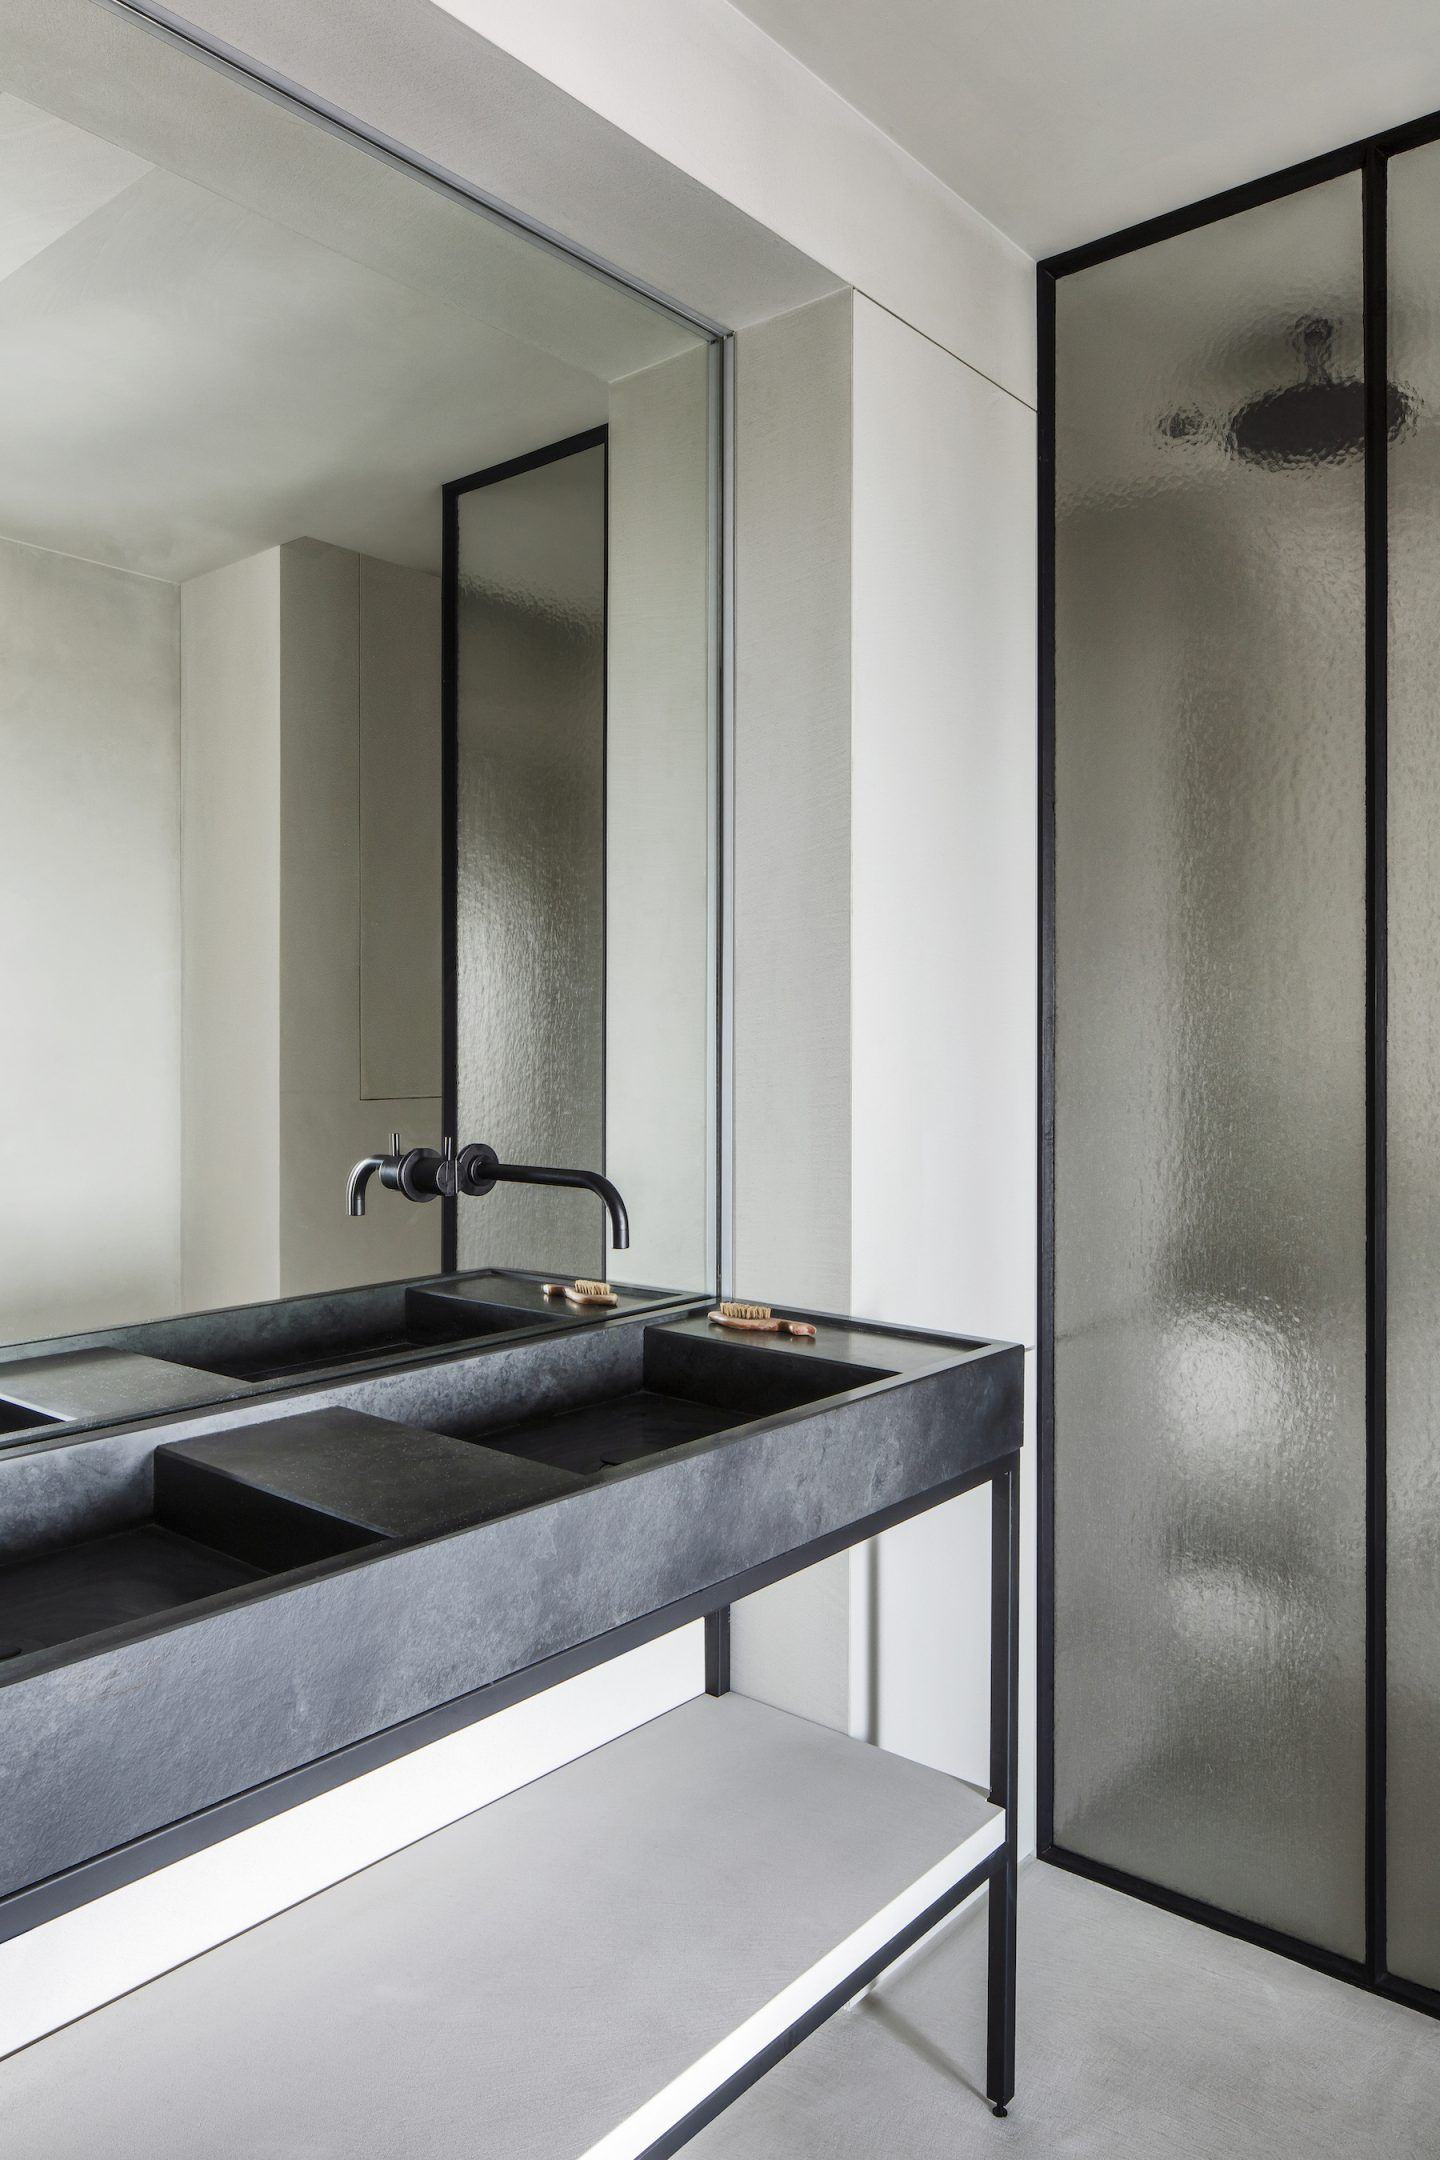 IGNANT-Architecture-Arjaan-De-Feyter-Penthouse-Zoute-09